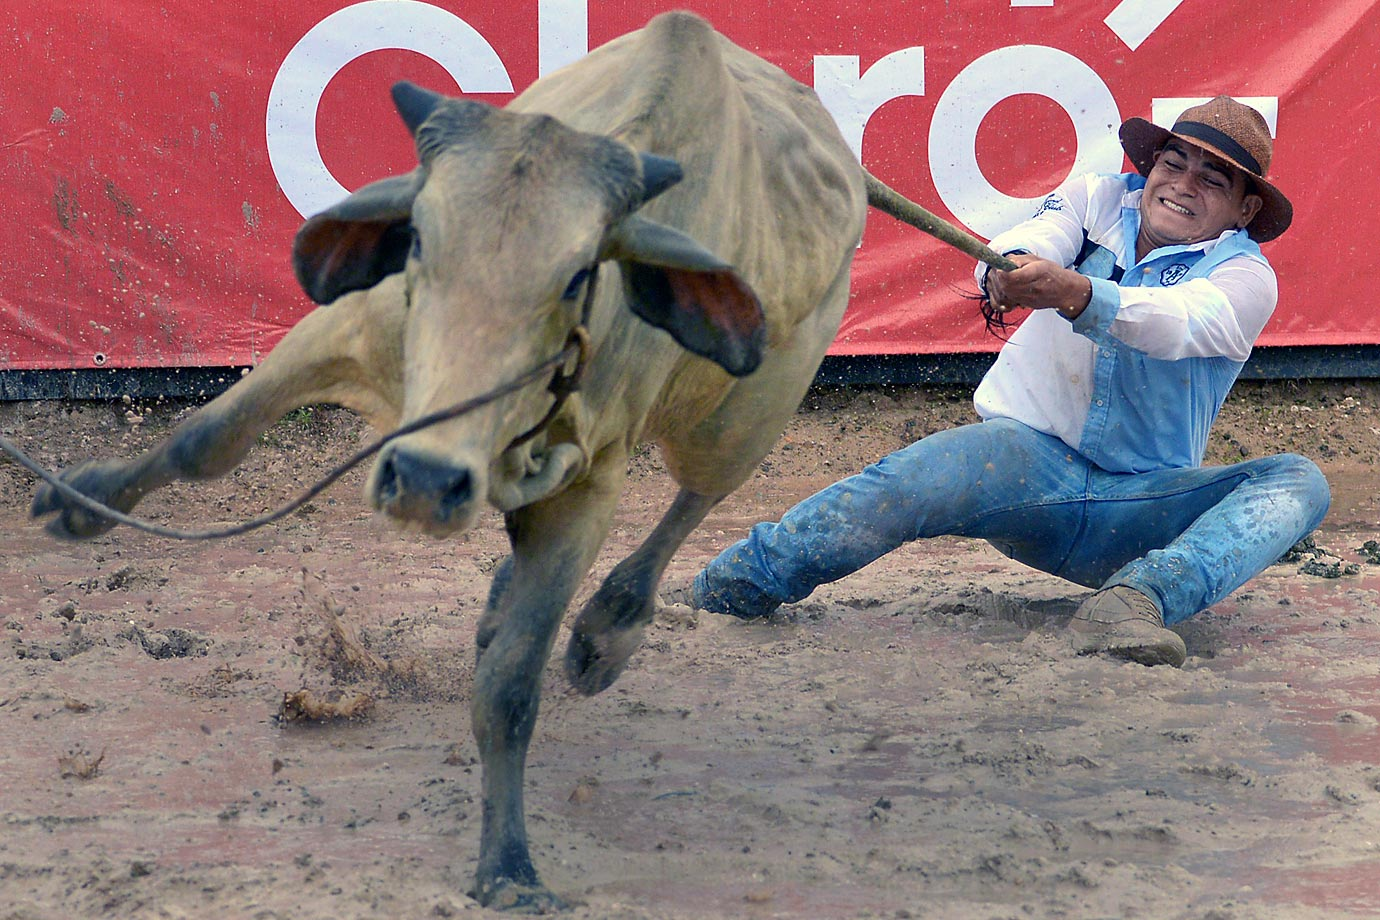 A Colombian cowboy during the 18th Coleo World Championship in Villavicencio.